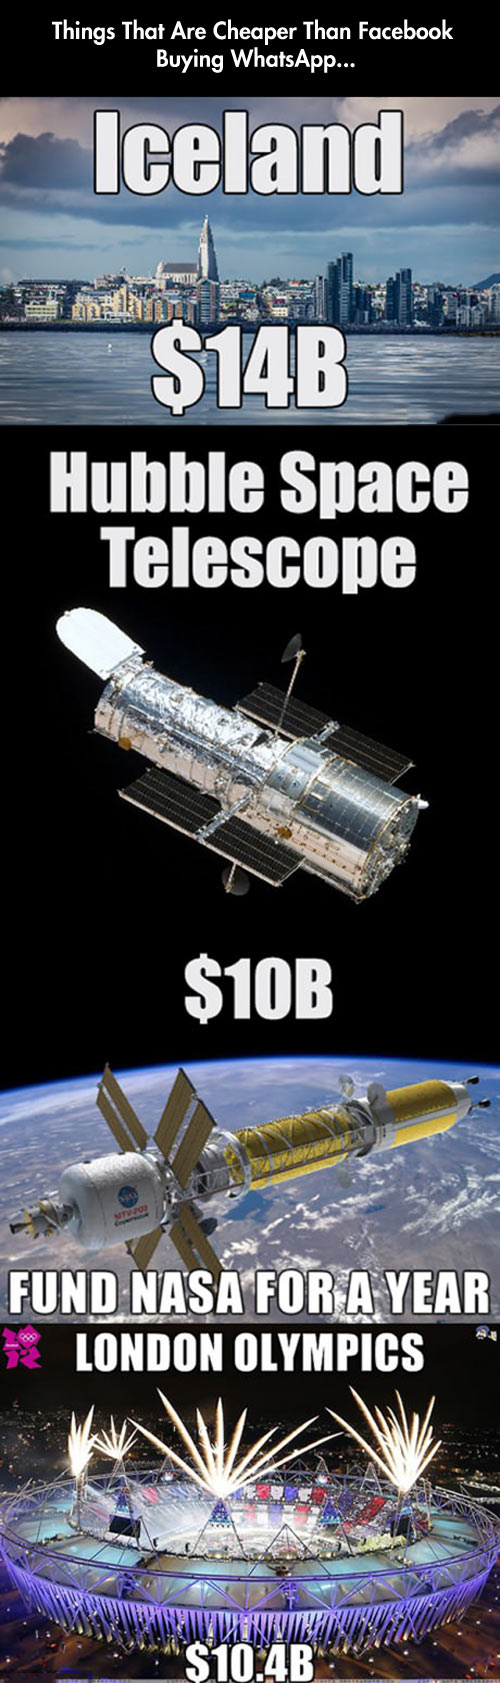 They could fund Nasa for close to two years...